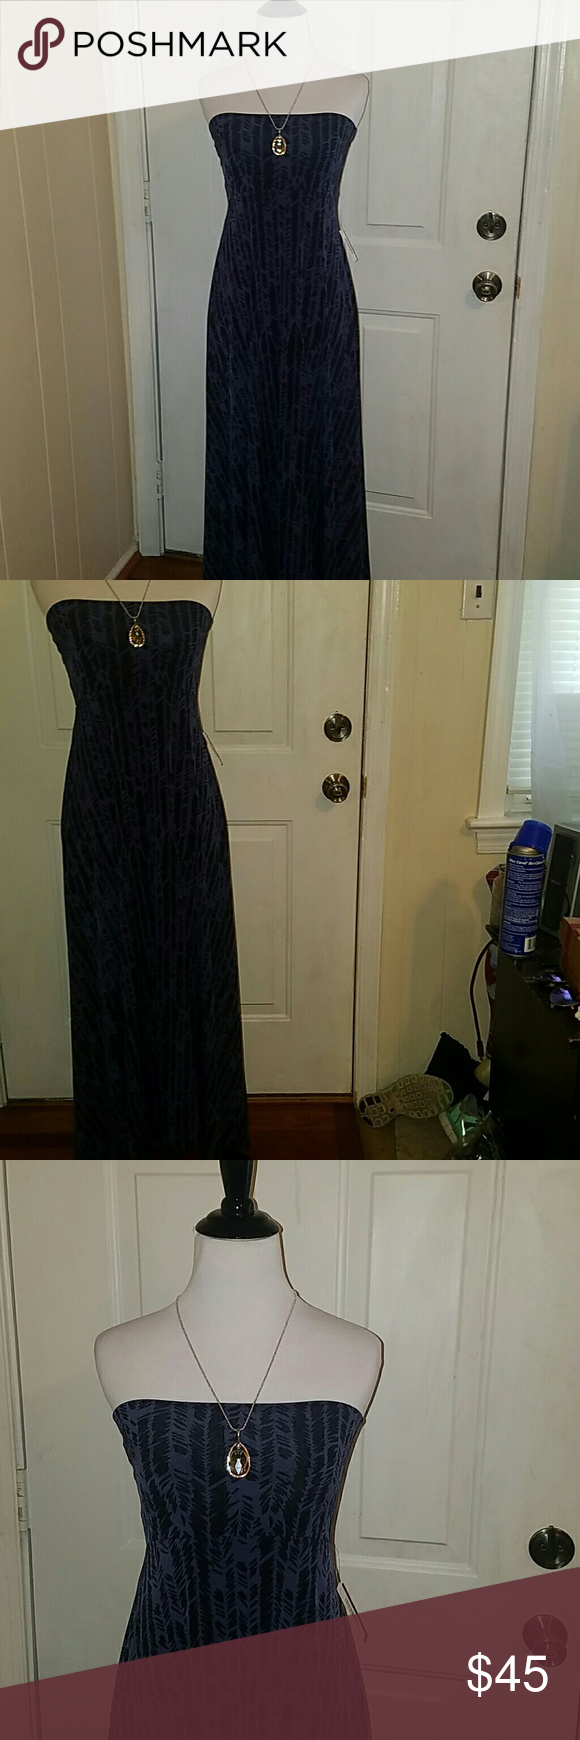 LULAROE MAXI DRESS NWT* IN XS .. VHTF SUPER CUTE PRINT AND Very HARD TO FIND PRINTED MAXI DRESS IN EXTRA SMALL BY LULAROE . BRAND NEW WITH TAGS ATTACHED . VERY STRETCHY AND SLINKY ... (* NECKLACE/PENDANT FOR SHOW ONLY ON DISPLAYS not for sale) Indigo and Black patterned print is adorable. LuLaRoe Dresses Maxi